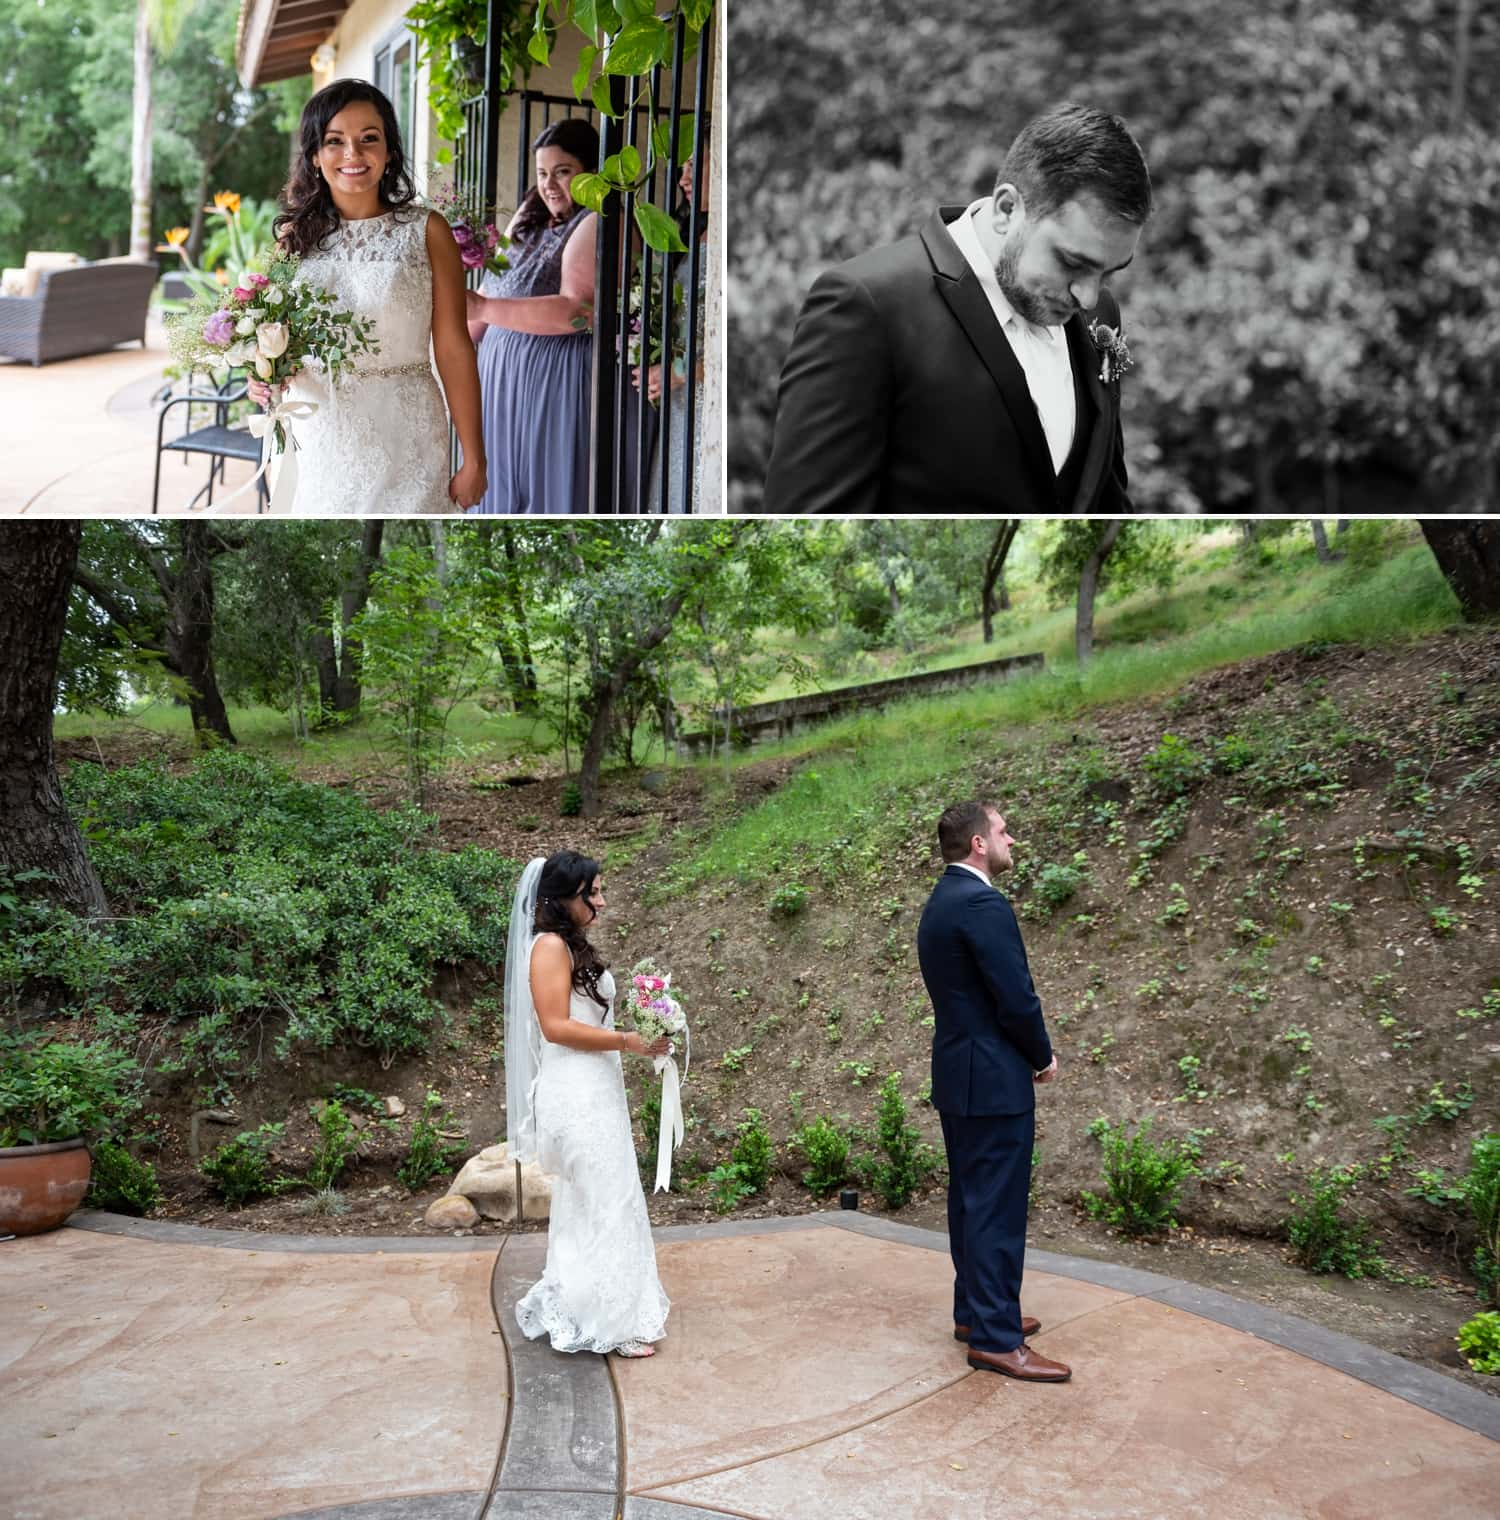 First look between bride and groom at Circle Oak Ranch in Temecula.